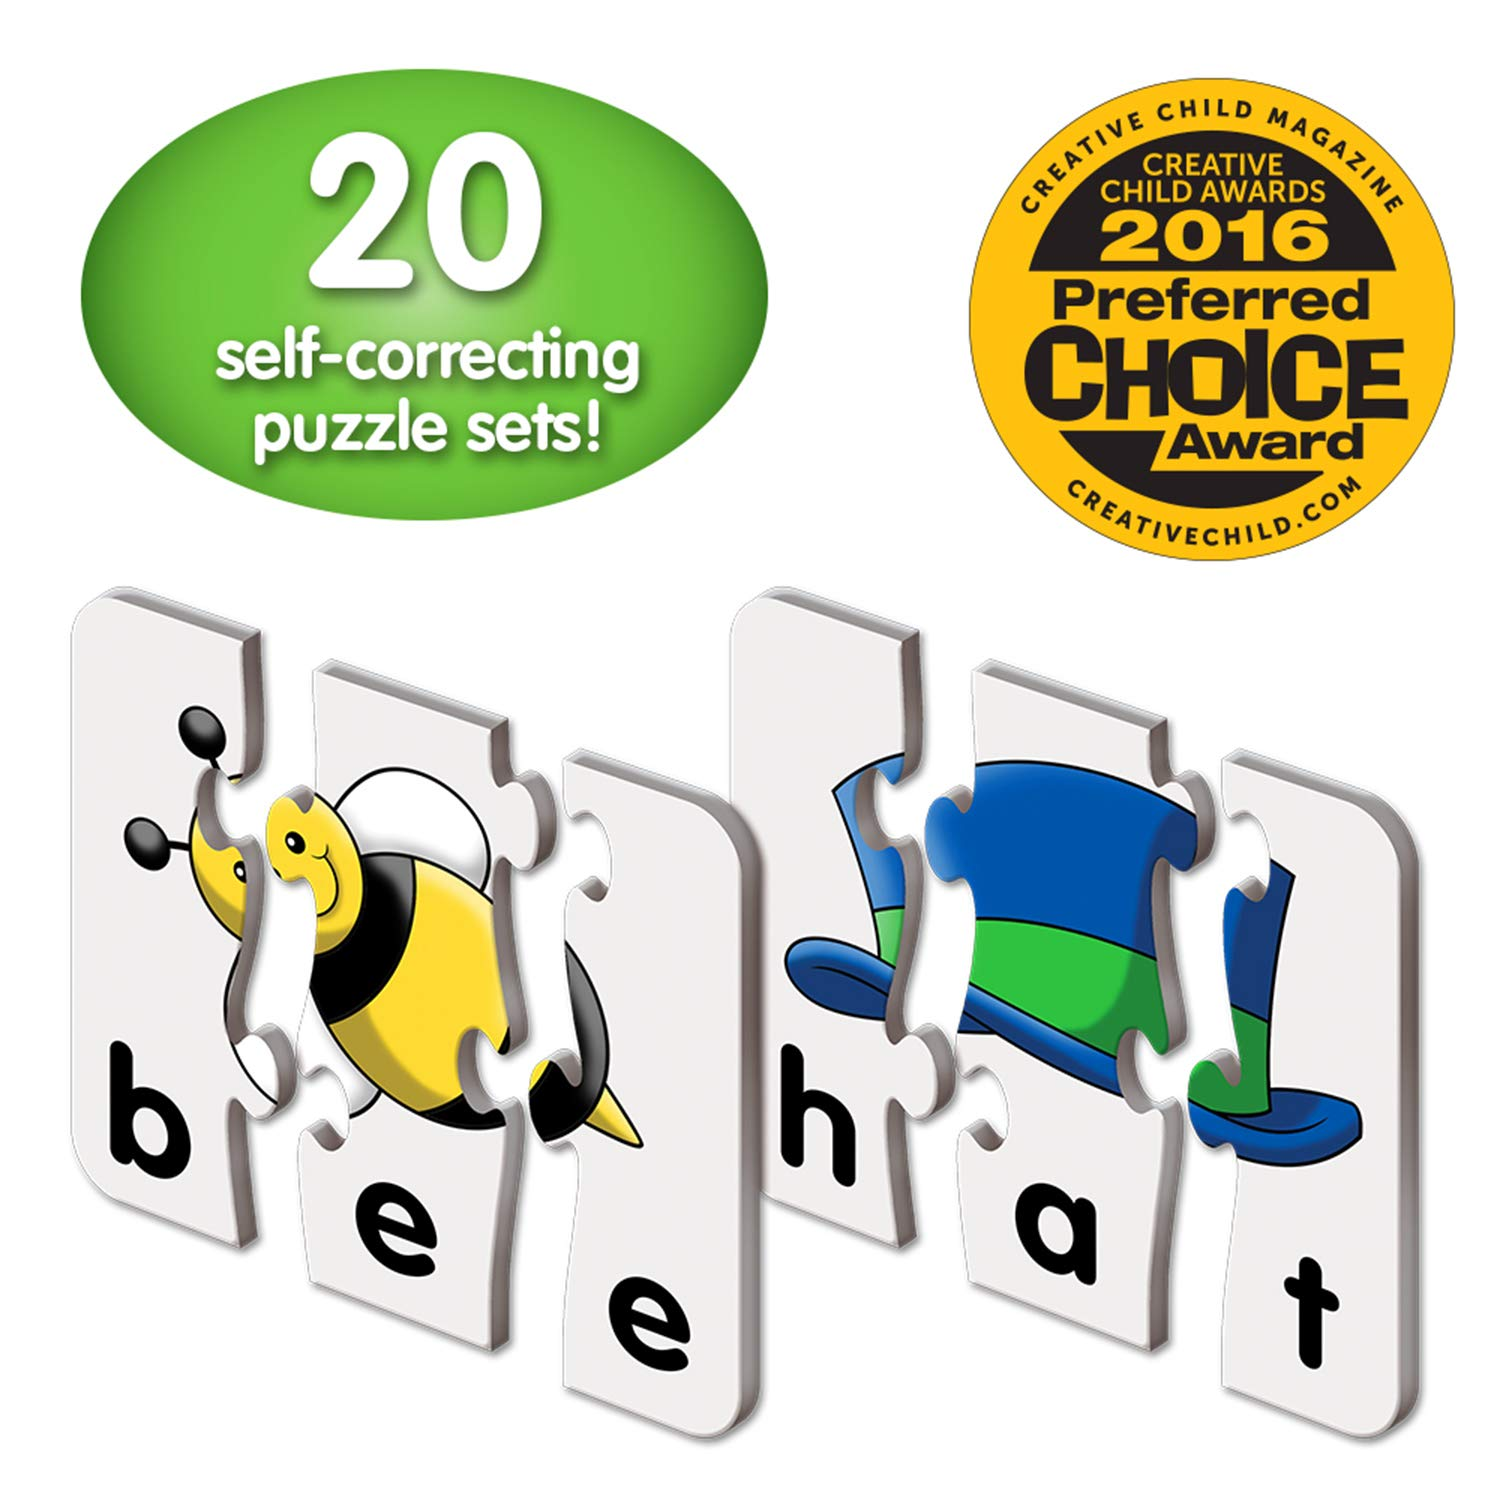 The Learning Journey: Match It! - 3 Letter Words - 20 Self-Correcting Reading & Spelling Puzzles with Matching Images